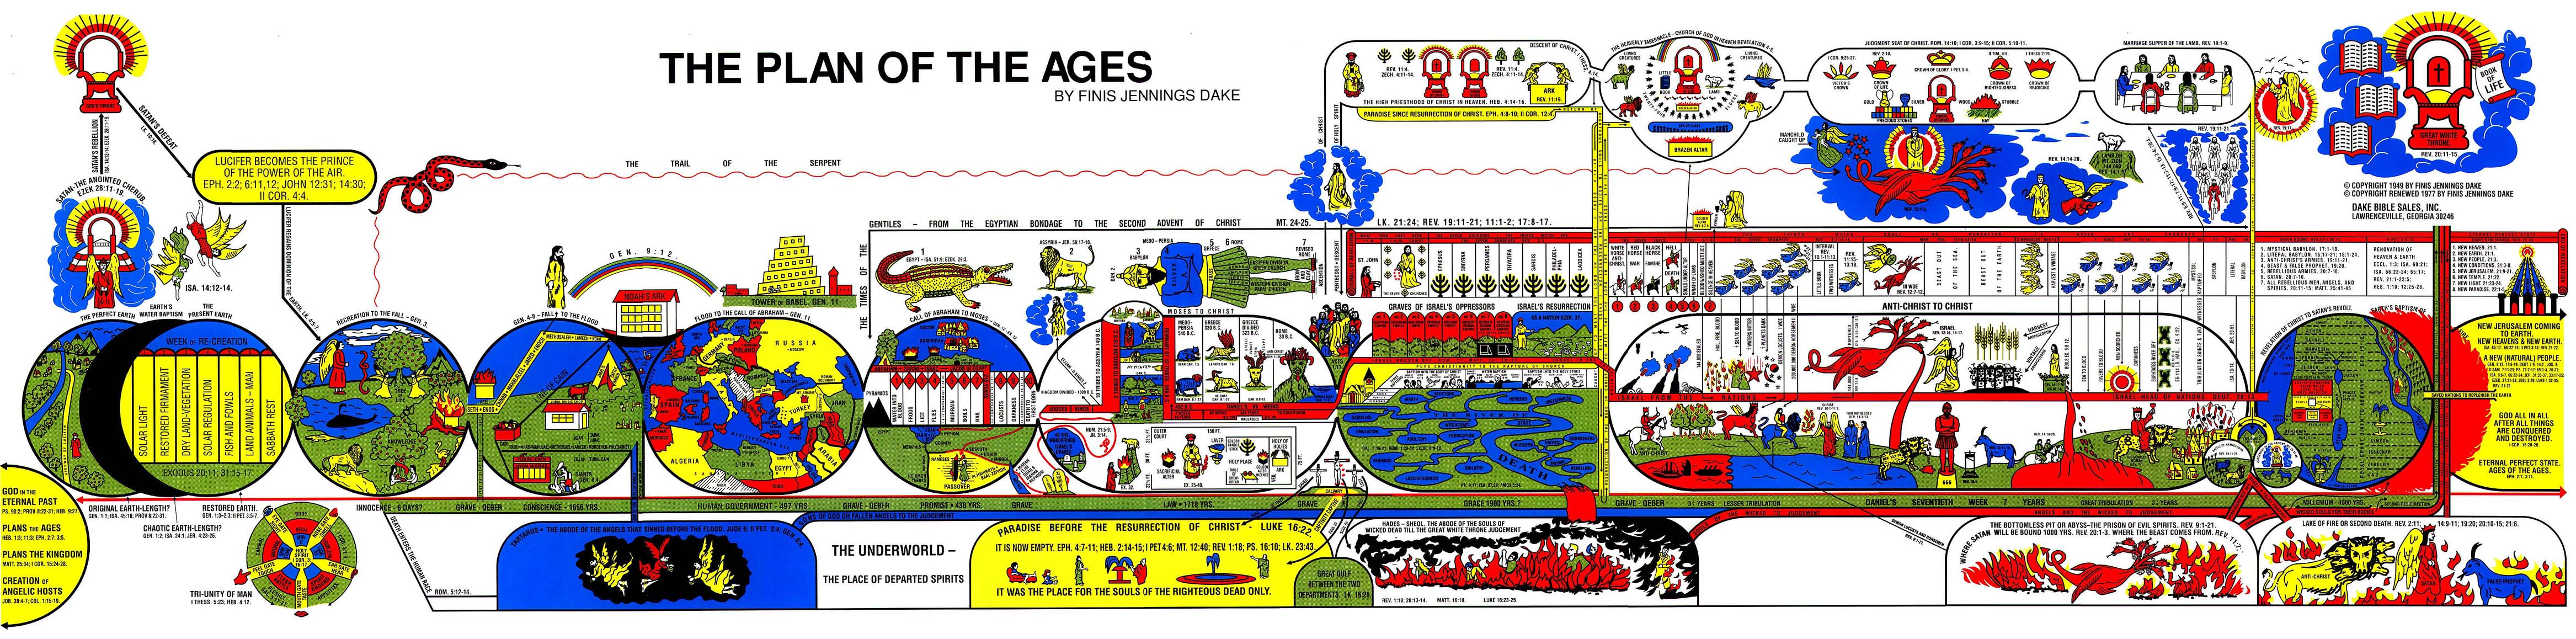 The Plan of the Ages Bible chart